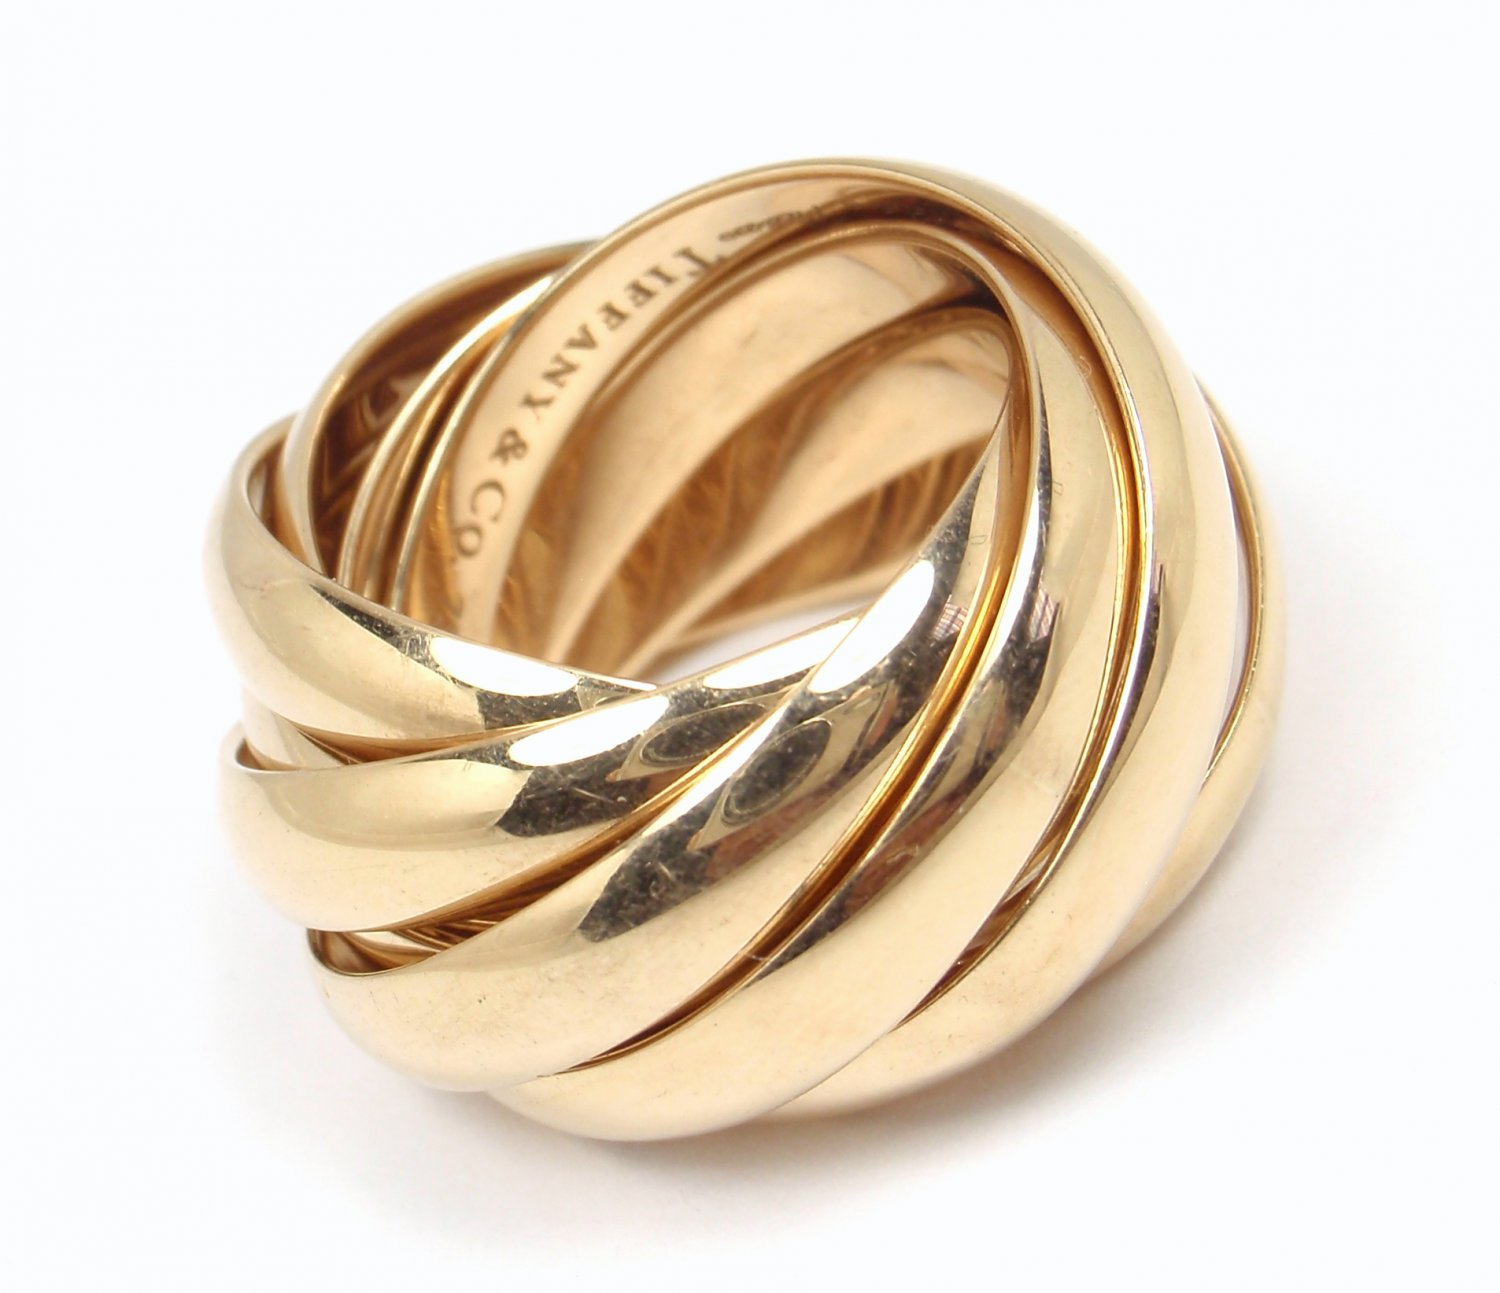 cd0f2e811 $6K Tiffany & Co Picasso Melody 18K Rose Gold Wedding Rolling 9-Band Ring  Size 6